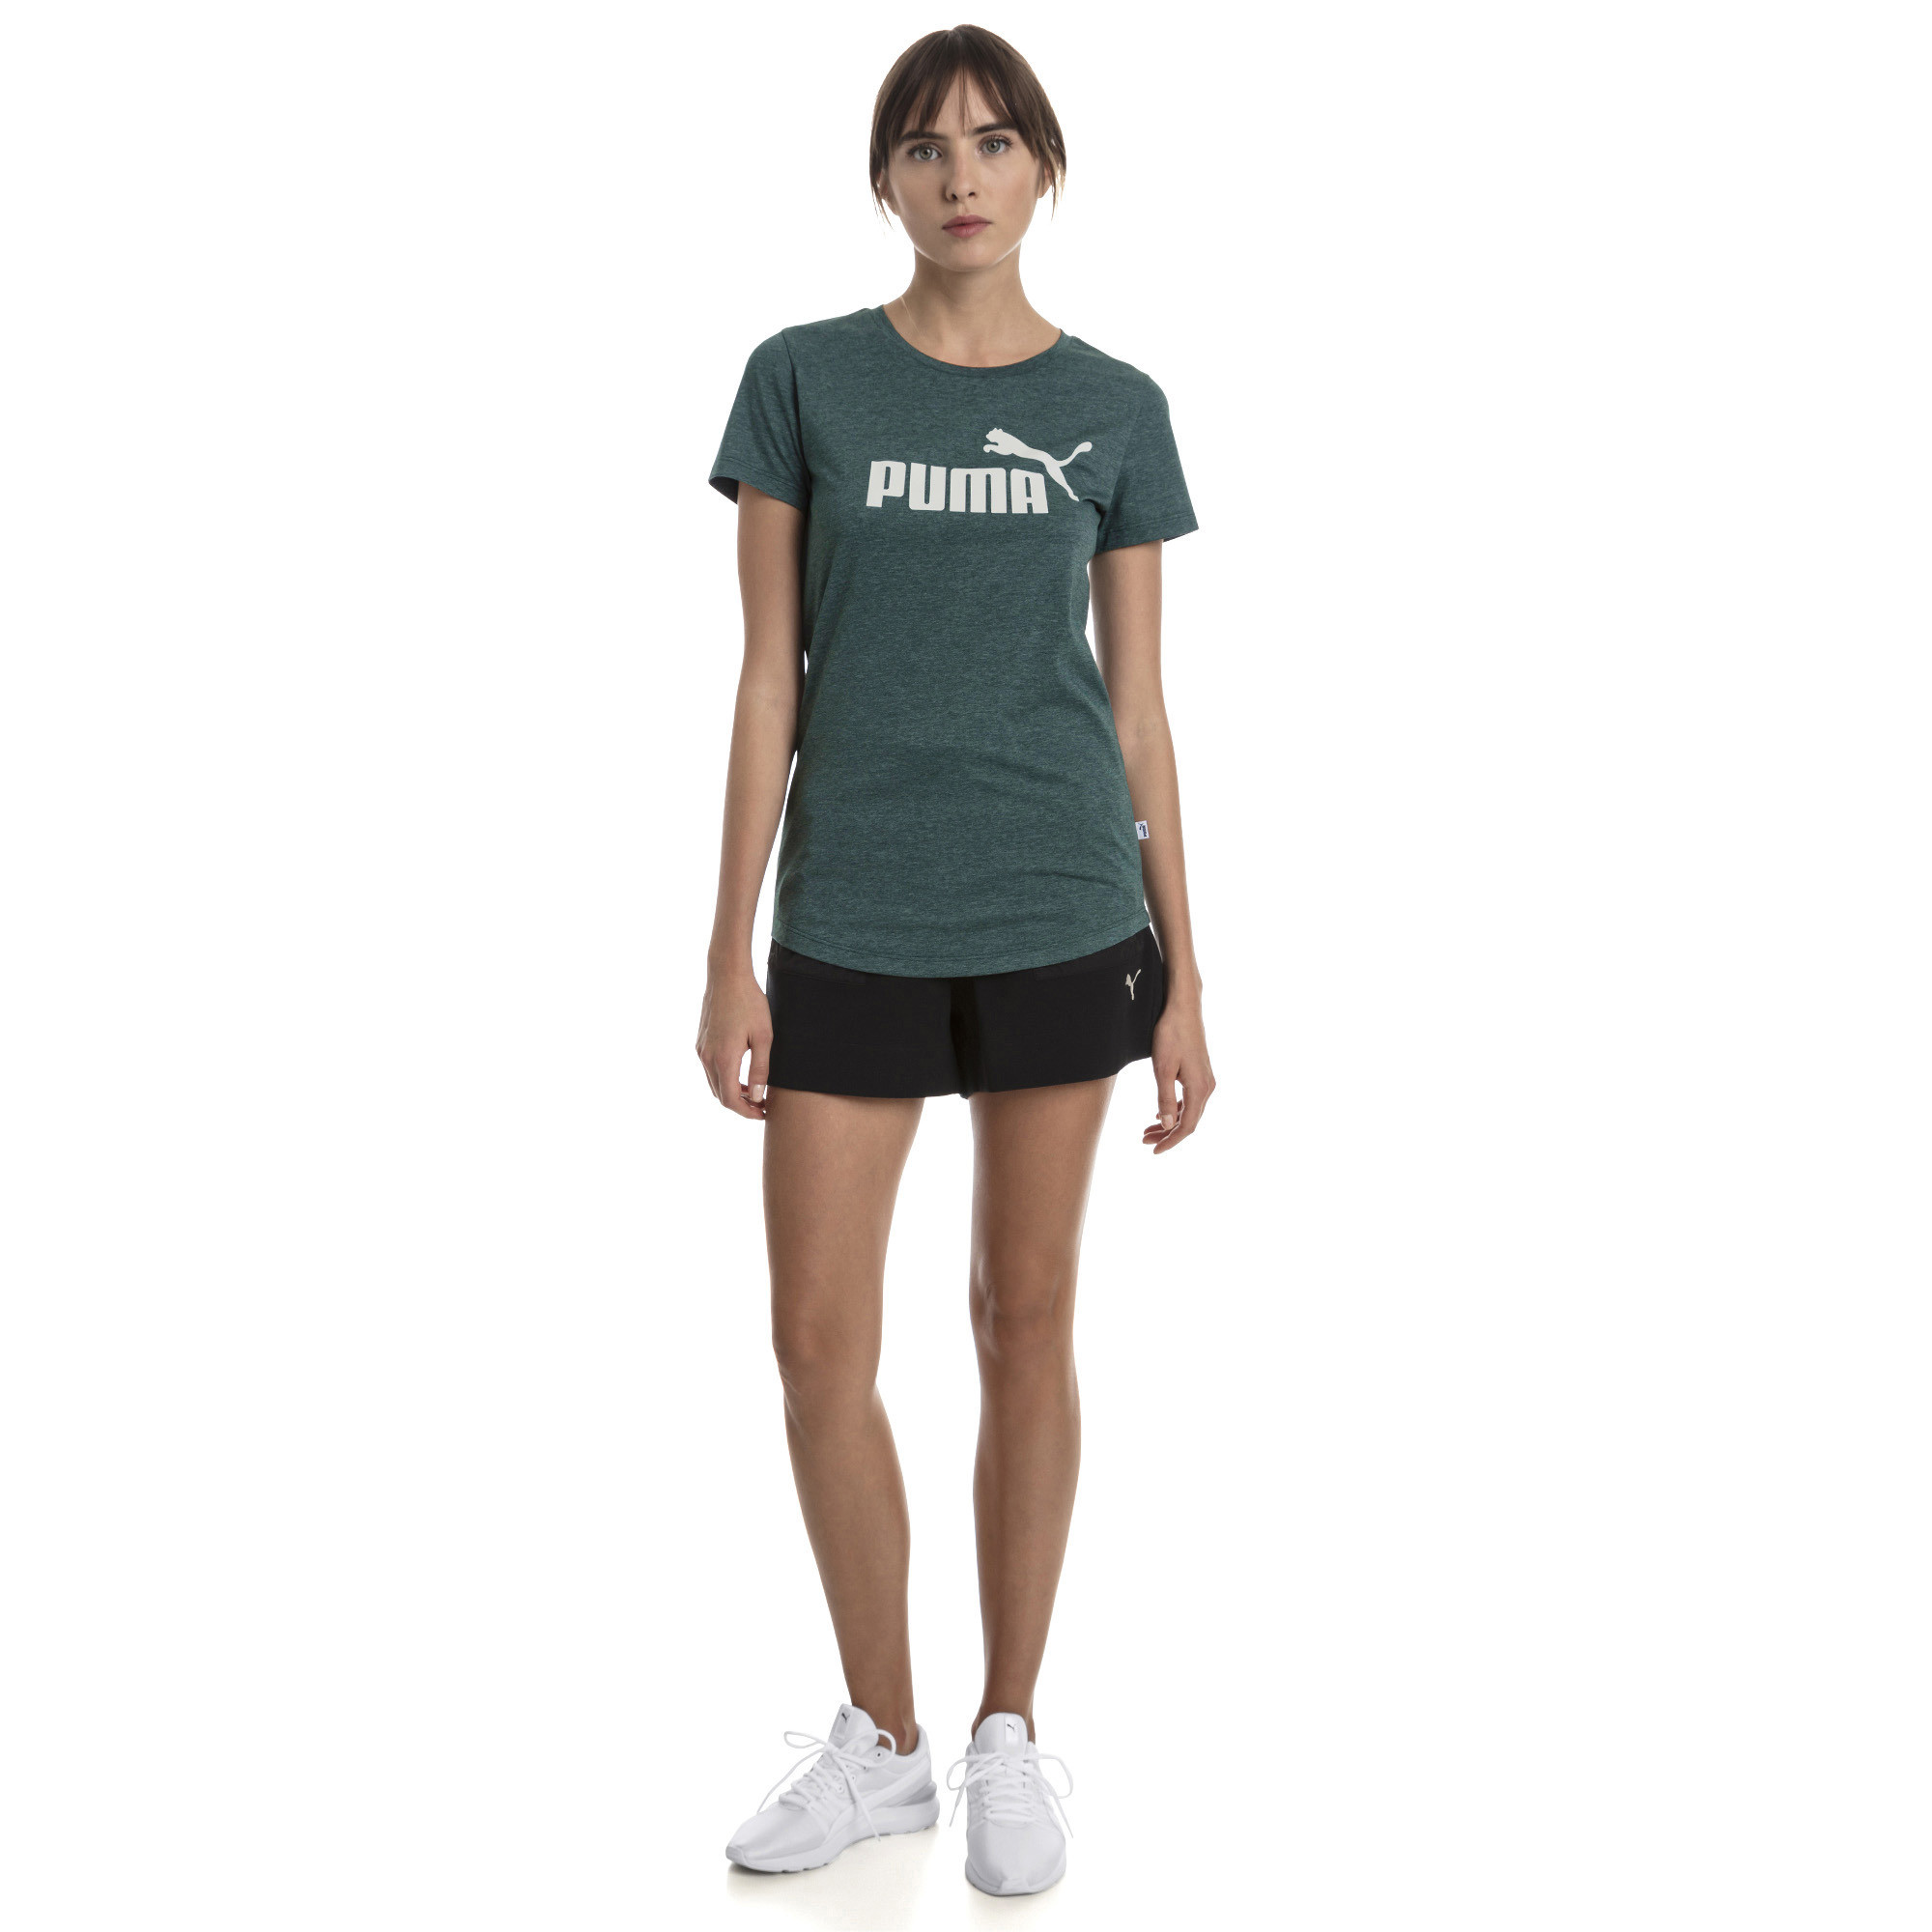 PUMA-Essentials-Women-039-s-Heather-Tee-Women-Tee-Basics thumbnail 14